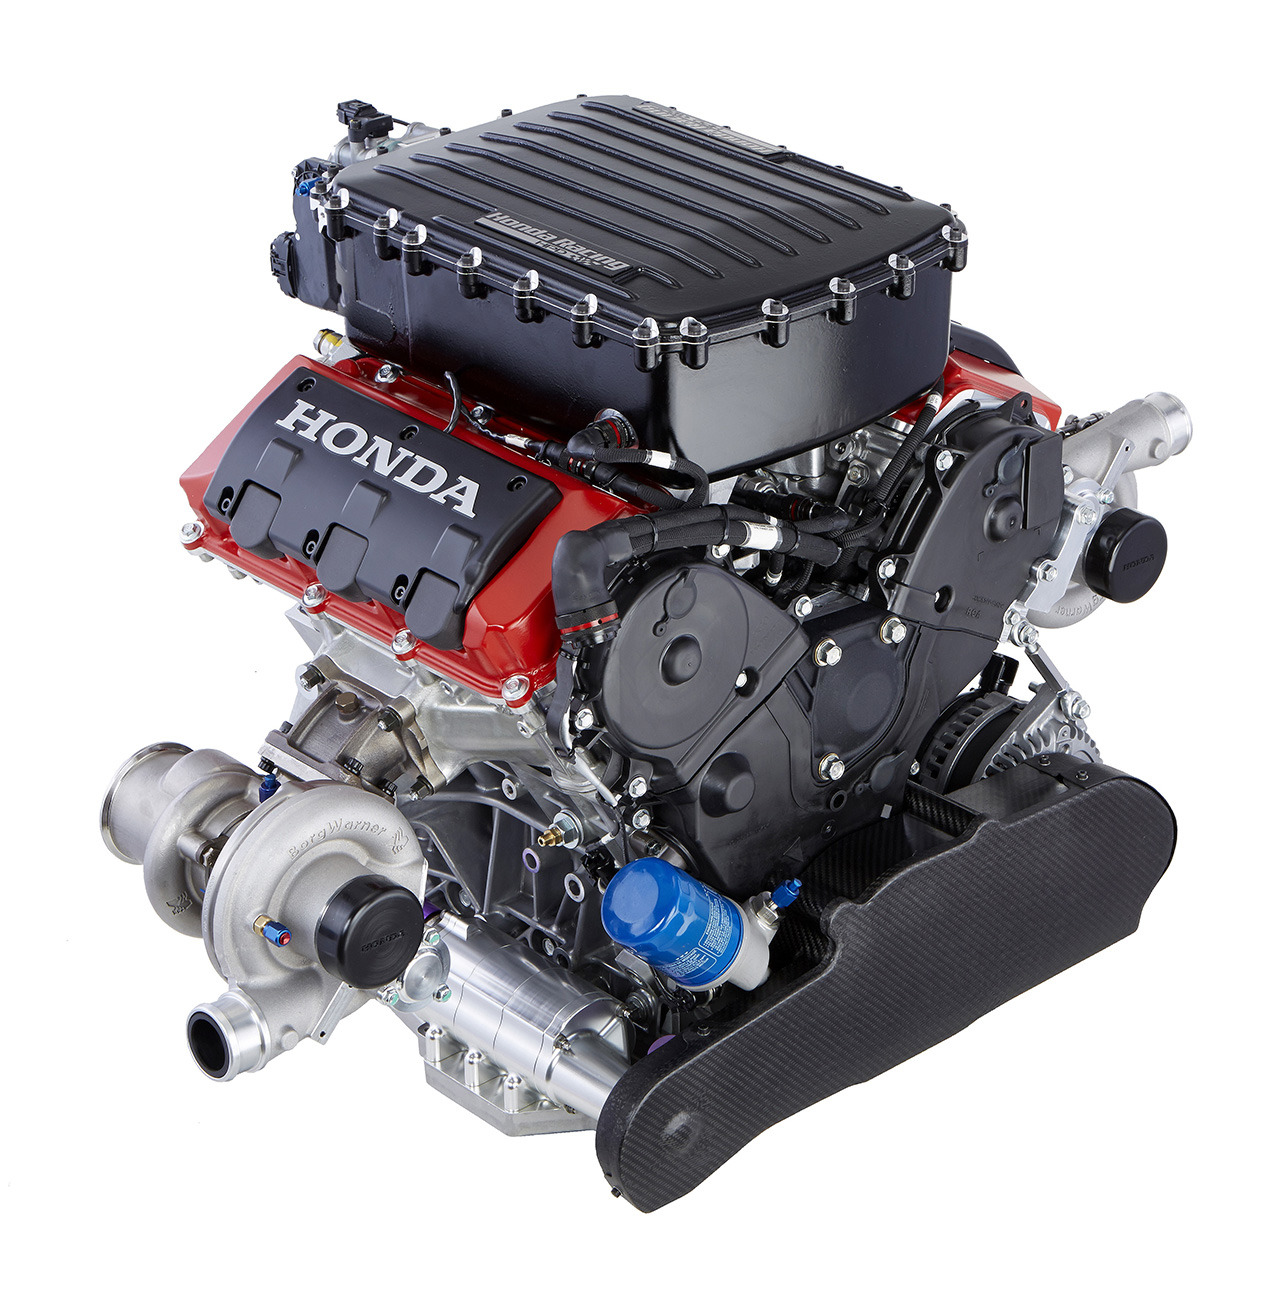 Honda unveils new 3.5-liter racing engine - CB7Tuner Forums on ford taurus fuel filter, 91 buick park avenue fuel filter, 91 pontiac grand am fuel filter, 91 toyota tercel fuel filter, 91 infiniti q45 fuel filter, 91 toyota mr2 fuel filter, 92 accord fuel filter, 95 accord fuel filter, 91 hyundai excel fuel filter, 91 toyota pickup fuel filter, 2000 honda accord transmission filter, 96 accord fuel filter,